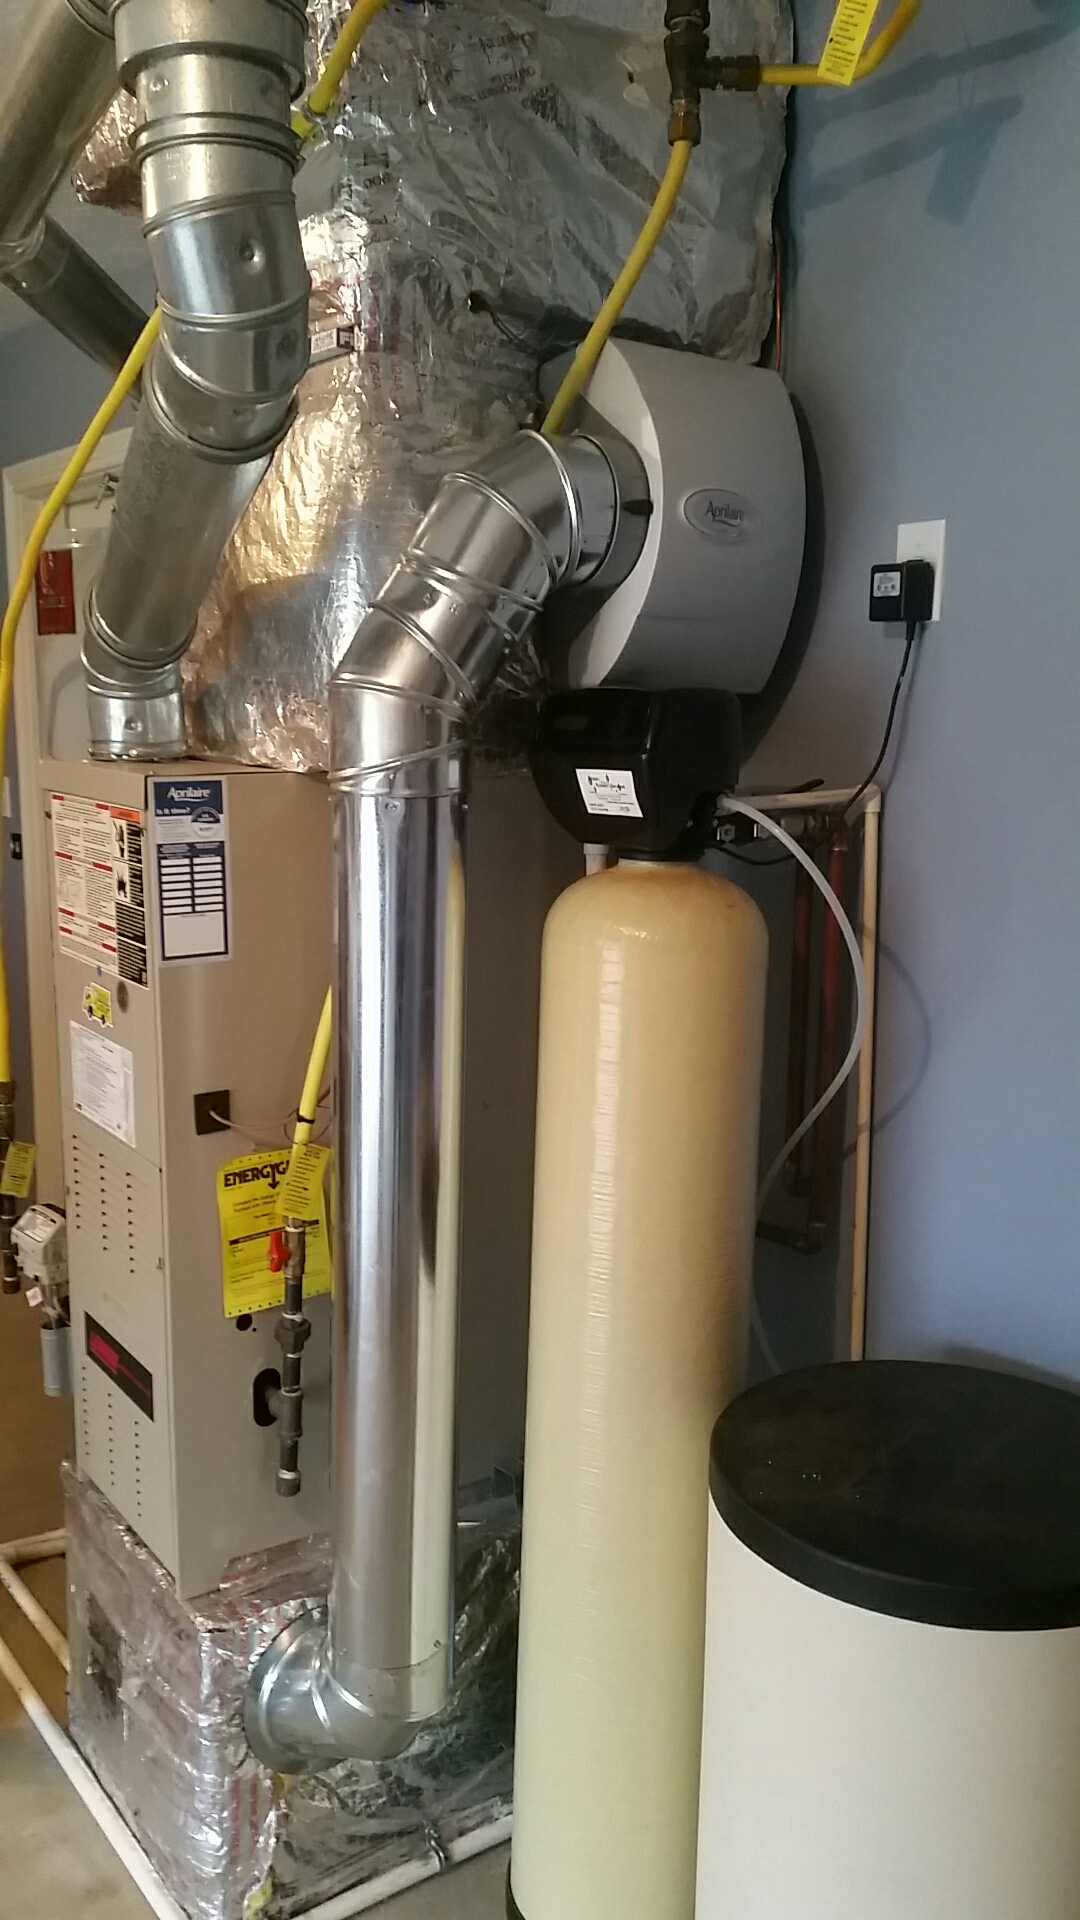 Oxford, OH - Installed Aprilaire humidifier